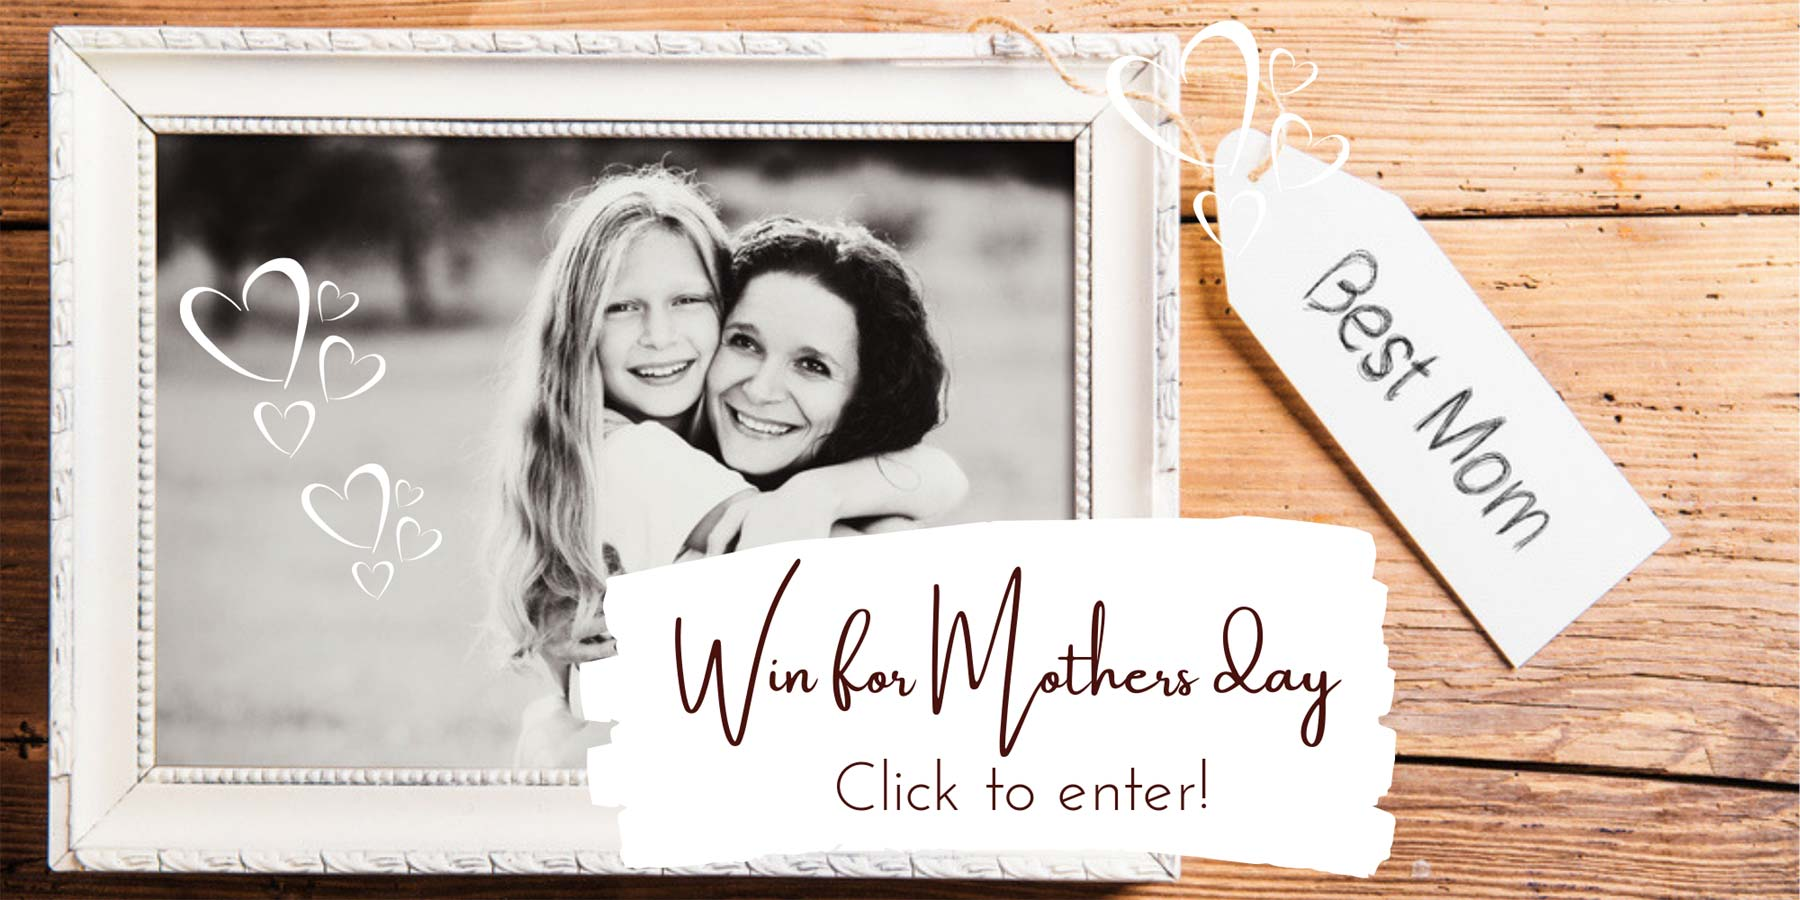 Win for Mothers Day. Click to enter